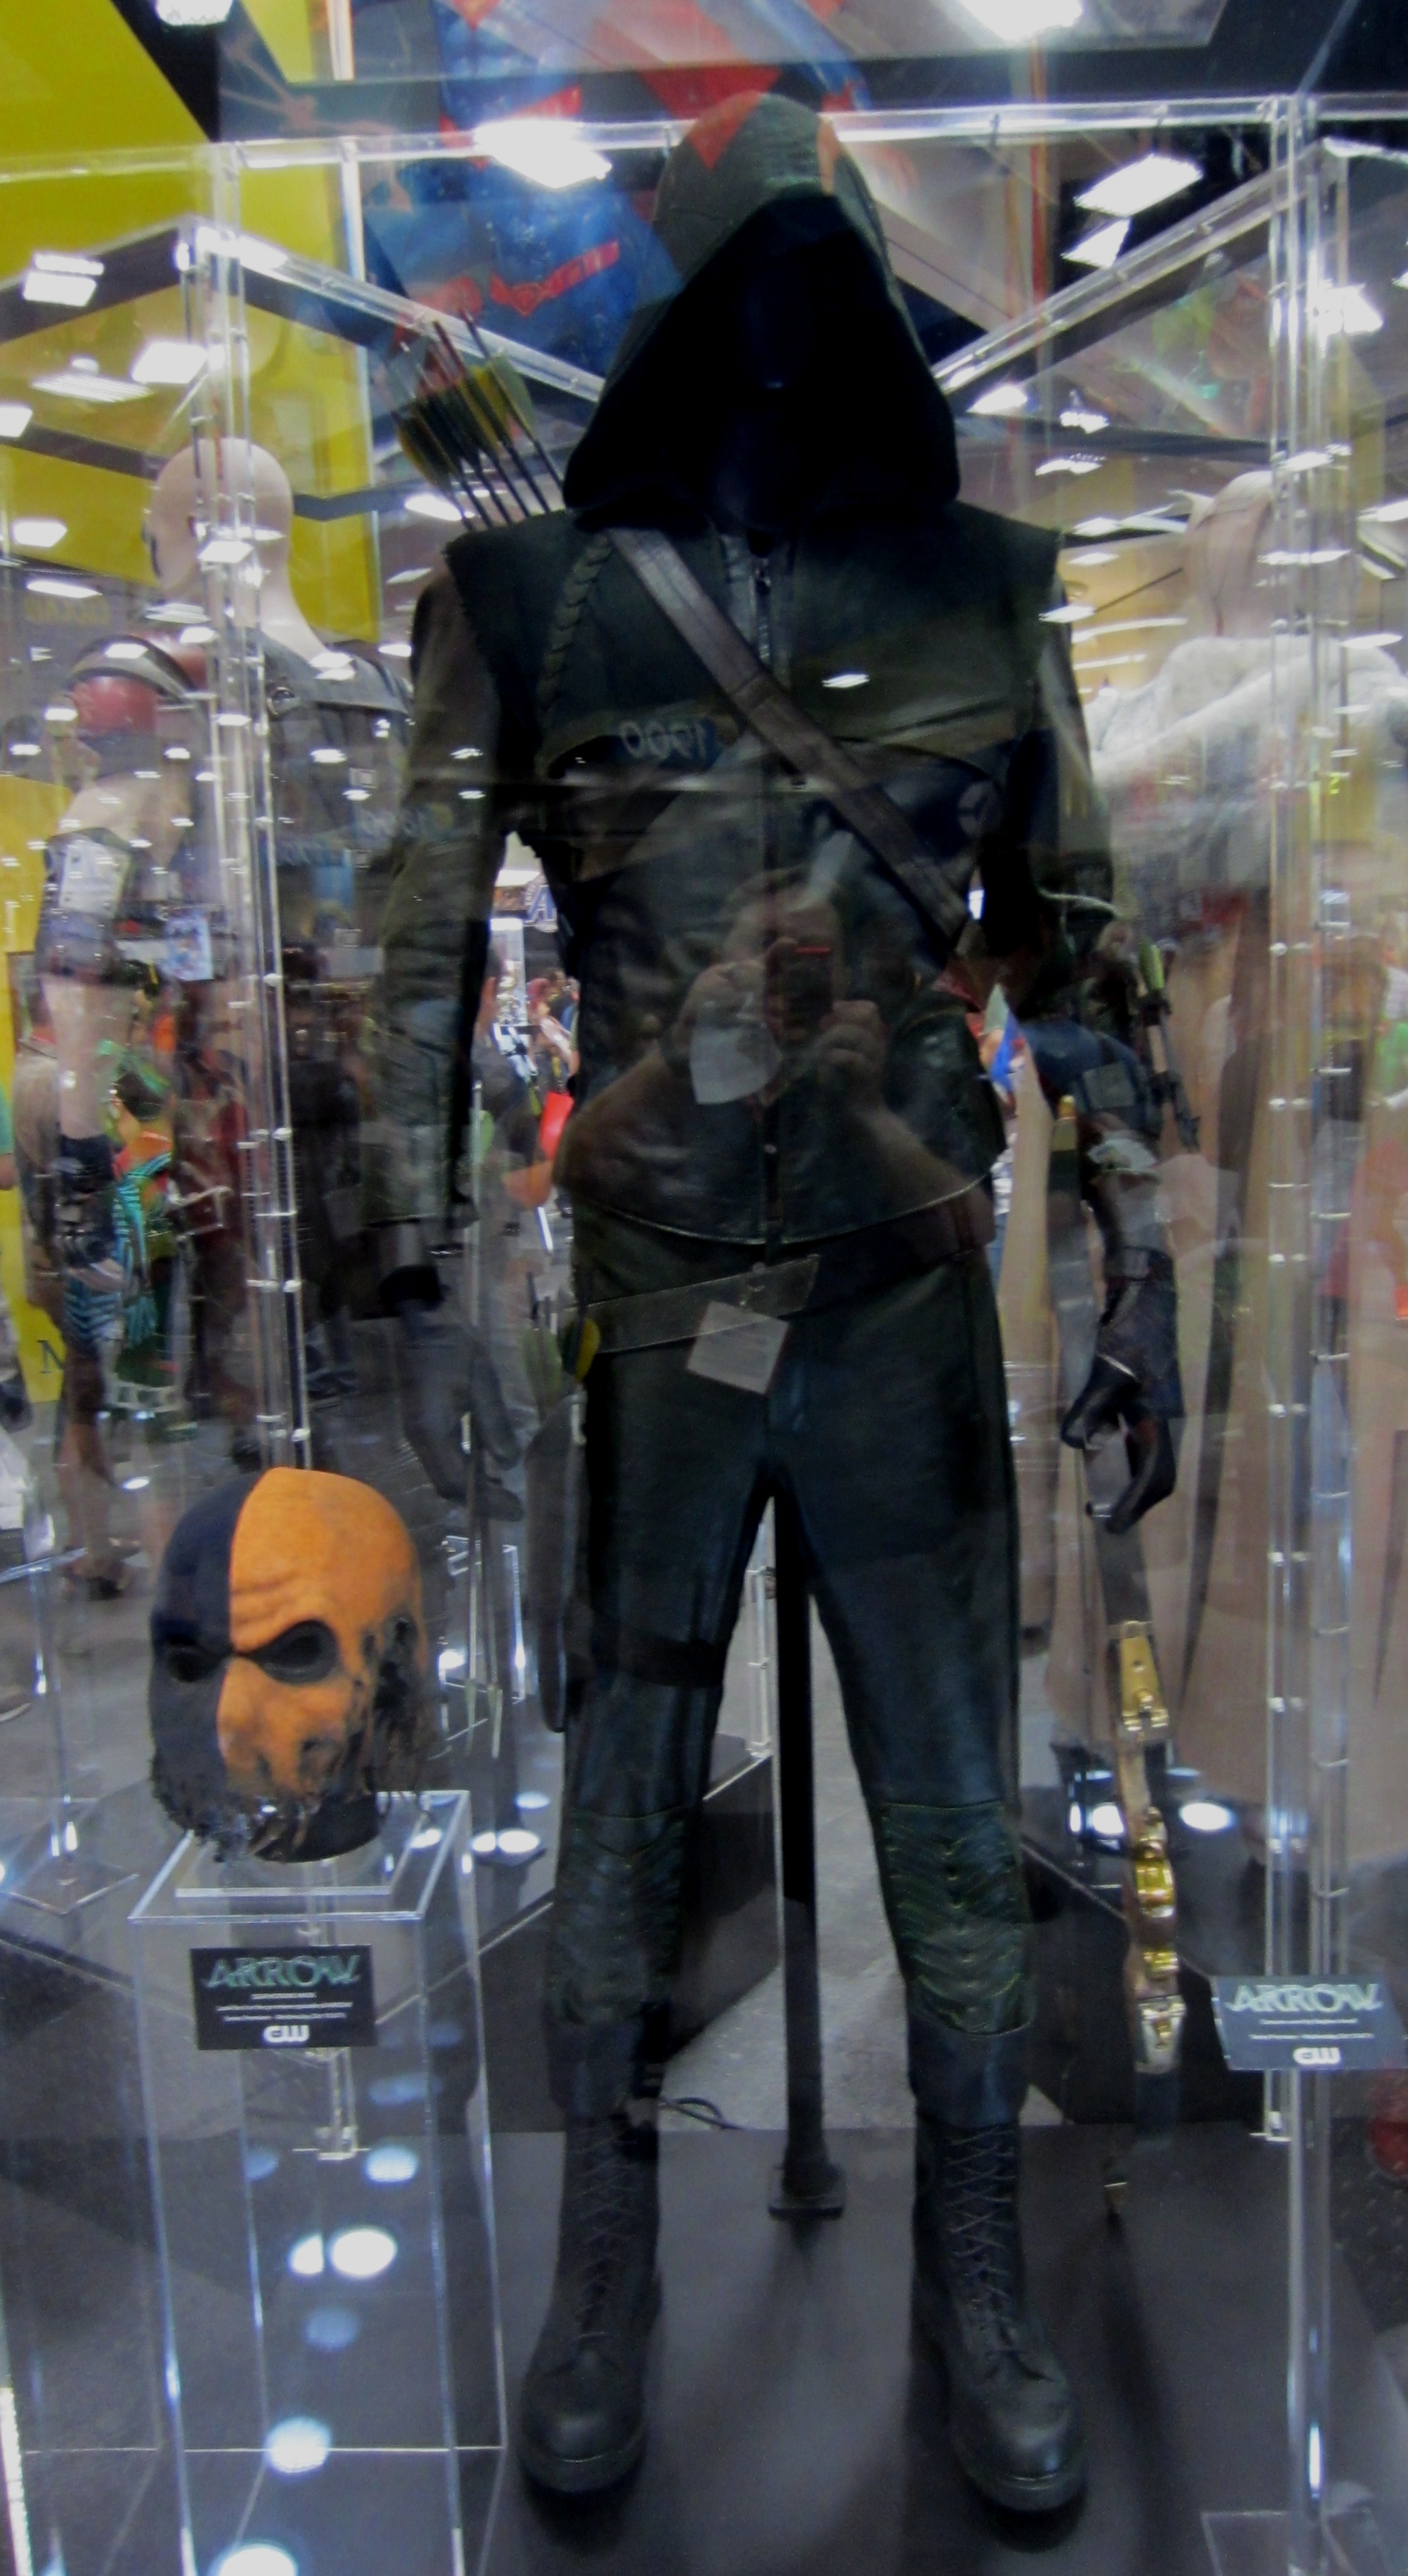 The Green Arrow ... & Arrow costume | borg.com